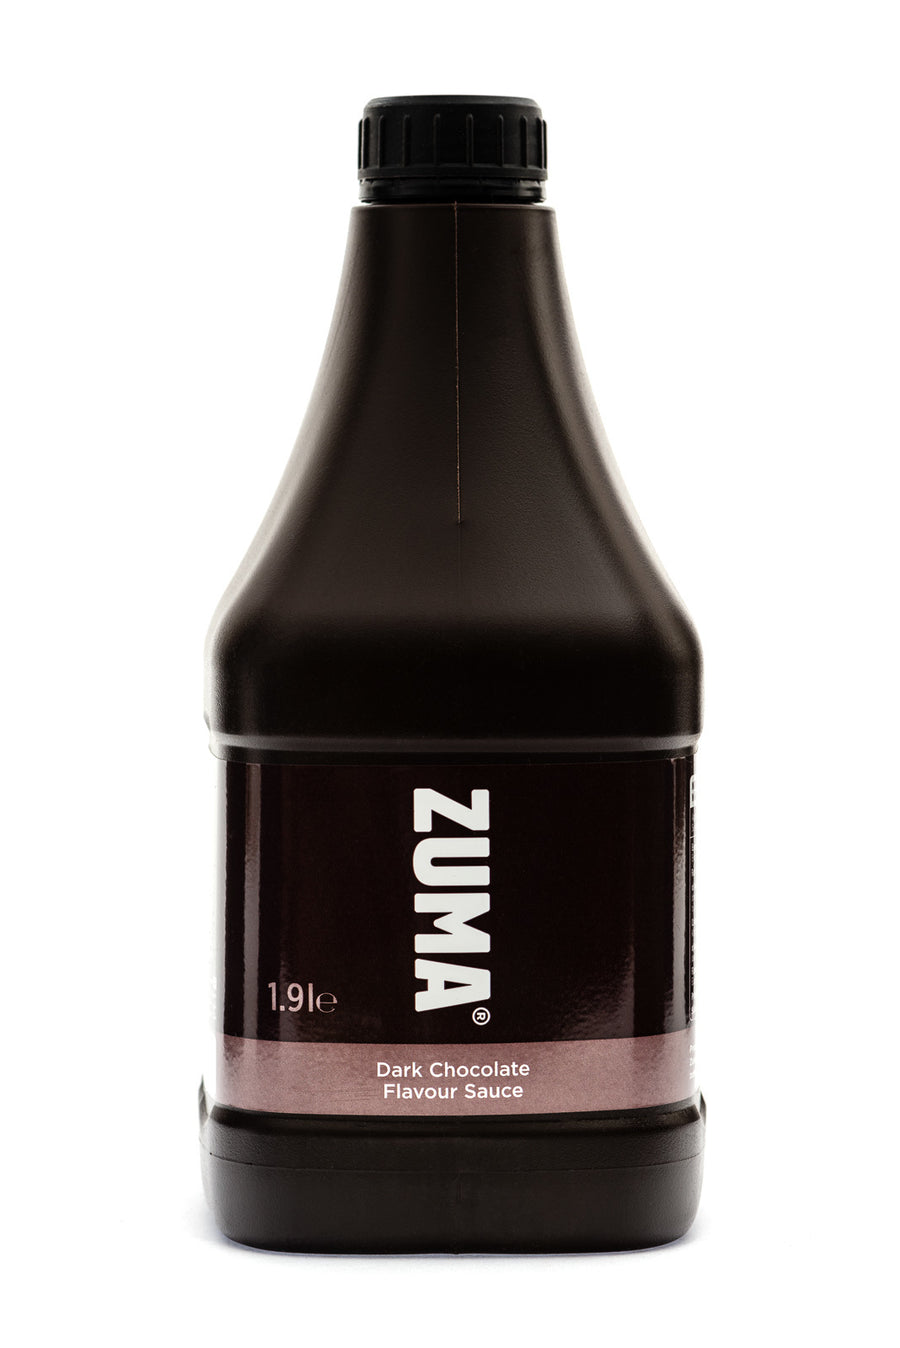 Zuma Dark Chocolate Sauce 1.9l